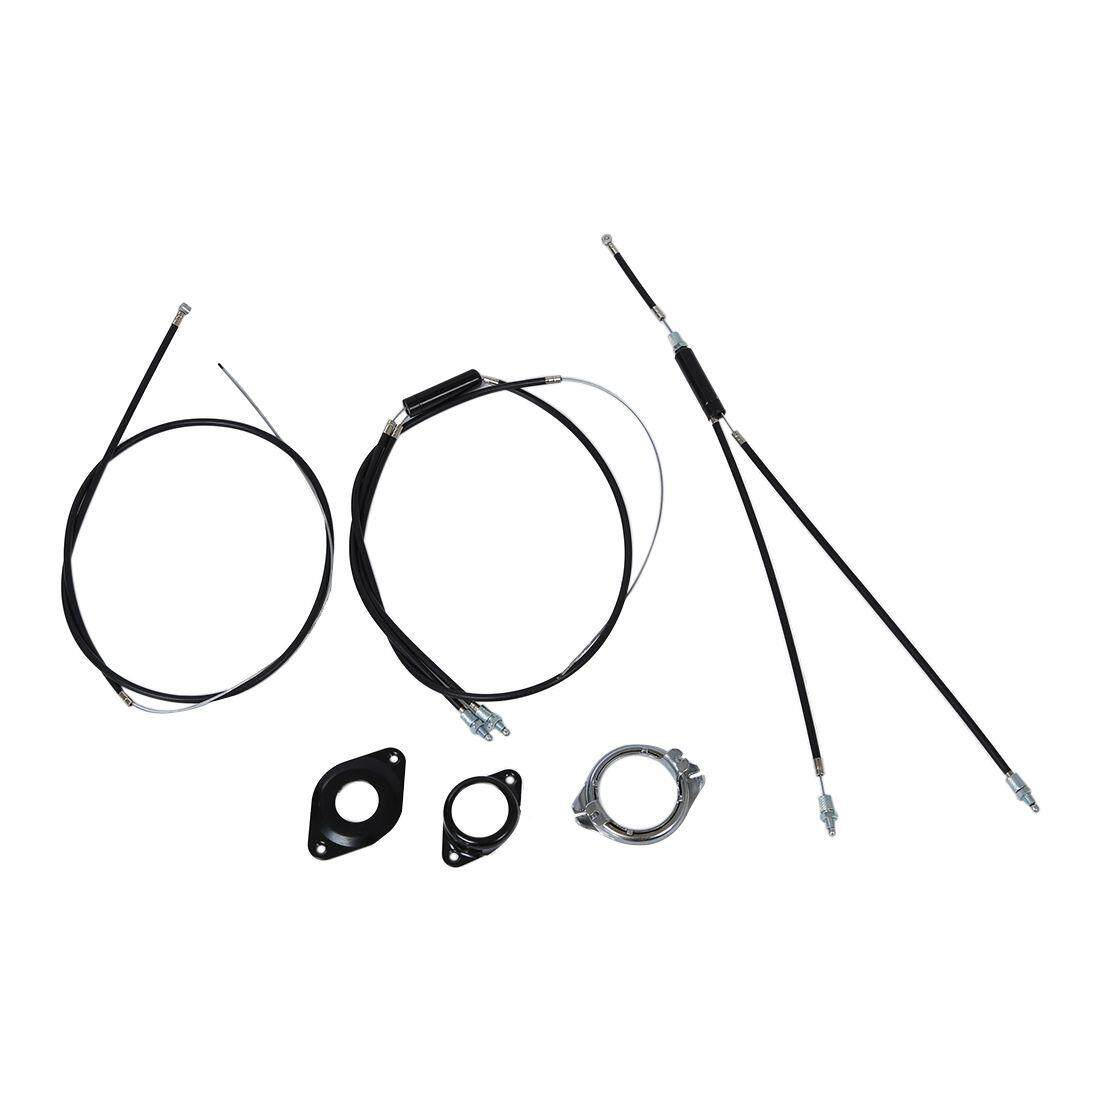 BMX brake cable (front + rear) Extra Long gyro rotor spinner